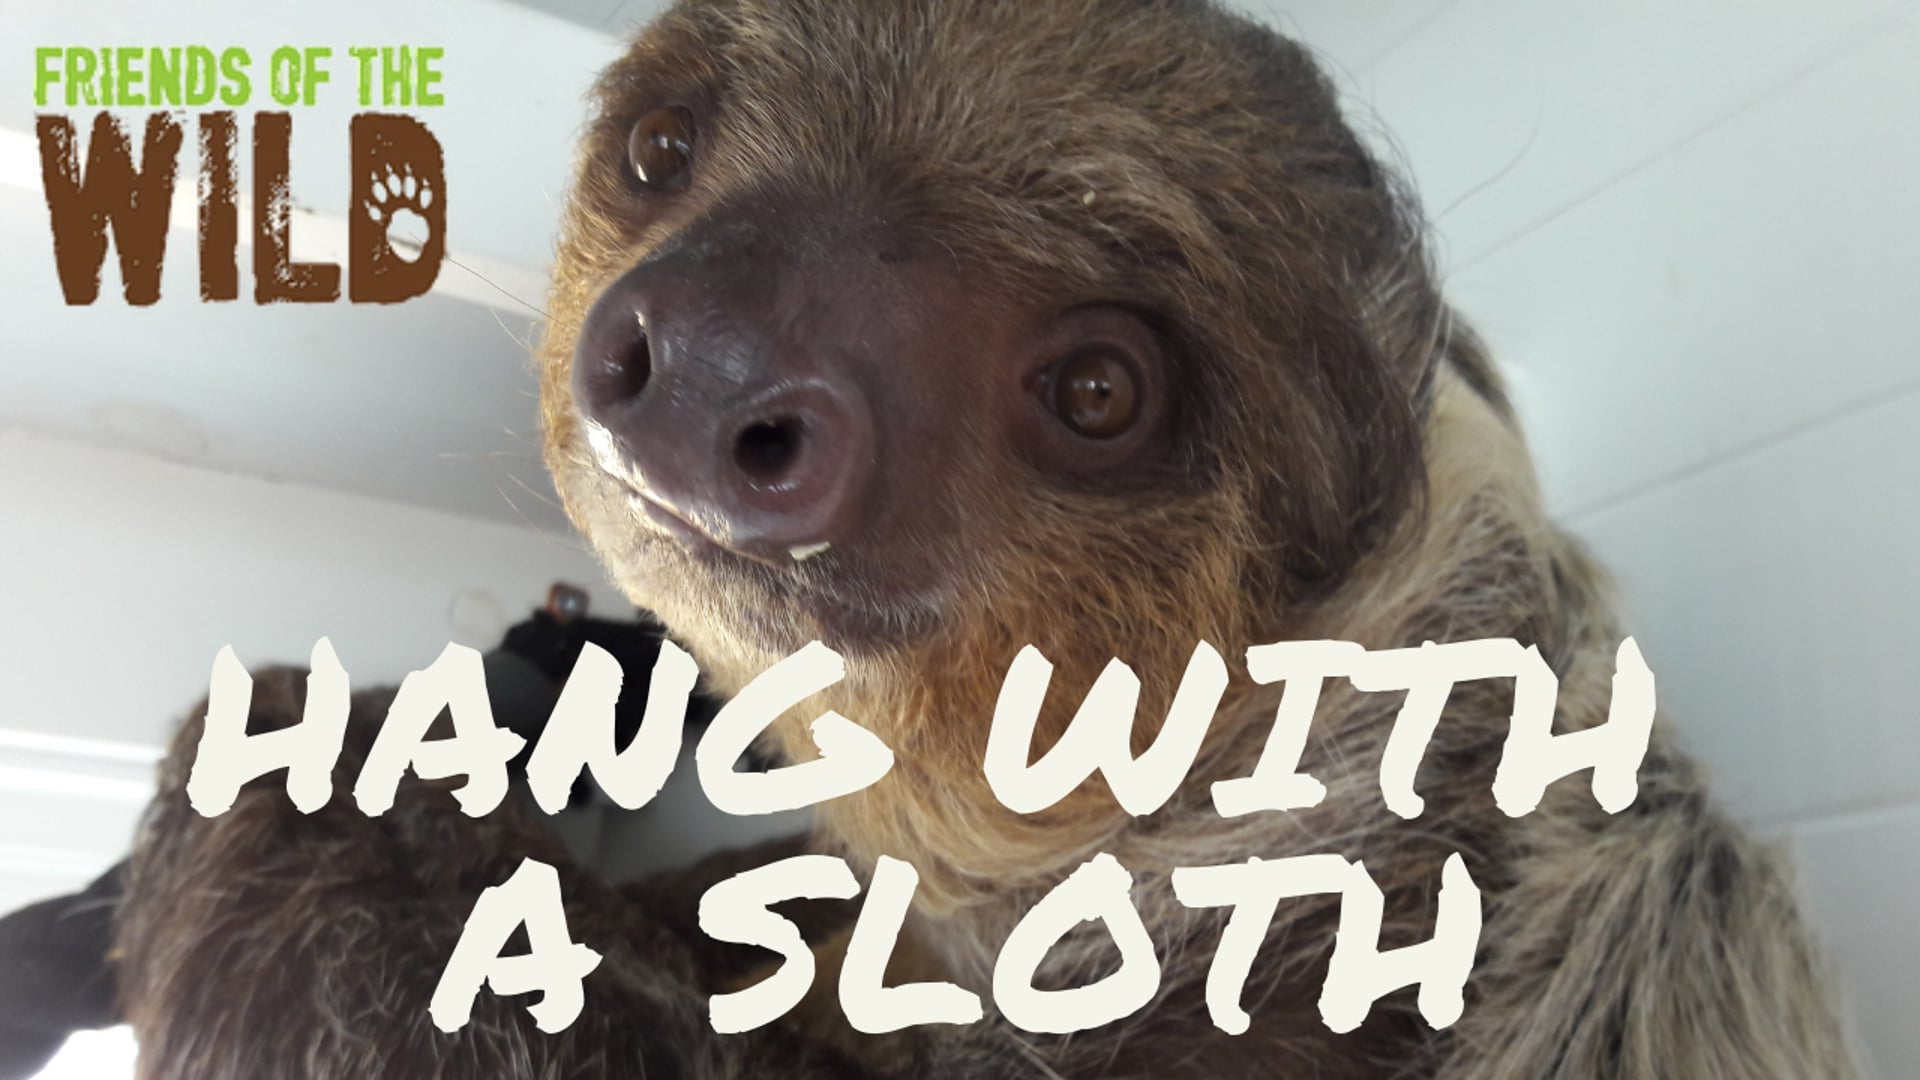 Winchester the Sloth wants to meet YOU